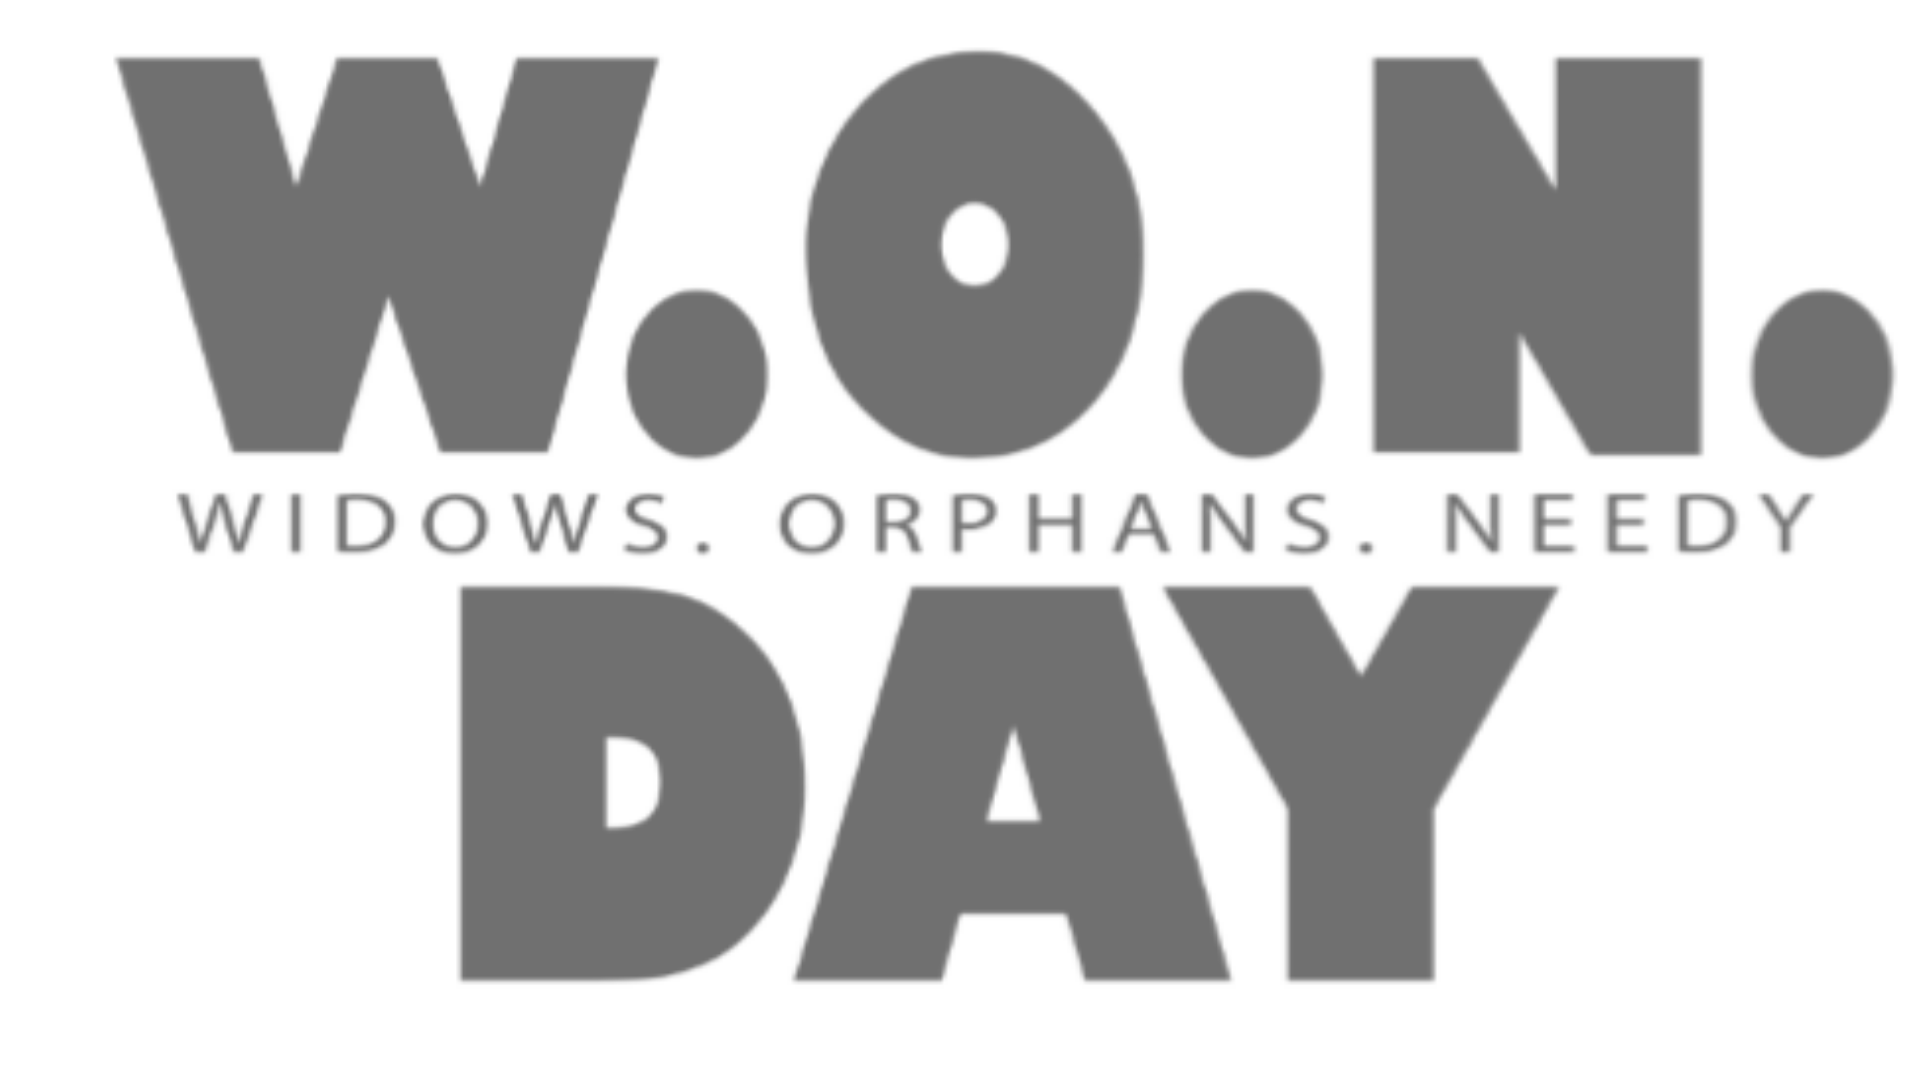 Registration is now open for our next W.O.N. (Widows. Orphans. Needy.) Day with our completed 3rd-5th graders! It is scheduled for July 26th from 9 AM-4 PM. Register HERE for your child and to chaperone!  We will be serving the Meals on Wheels organization, having a derby race and painting fingernails at a nursing home. and playing at Jump Street in Katy! Your kid won't want to miss this time of serving and having a blast!